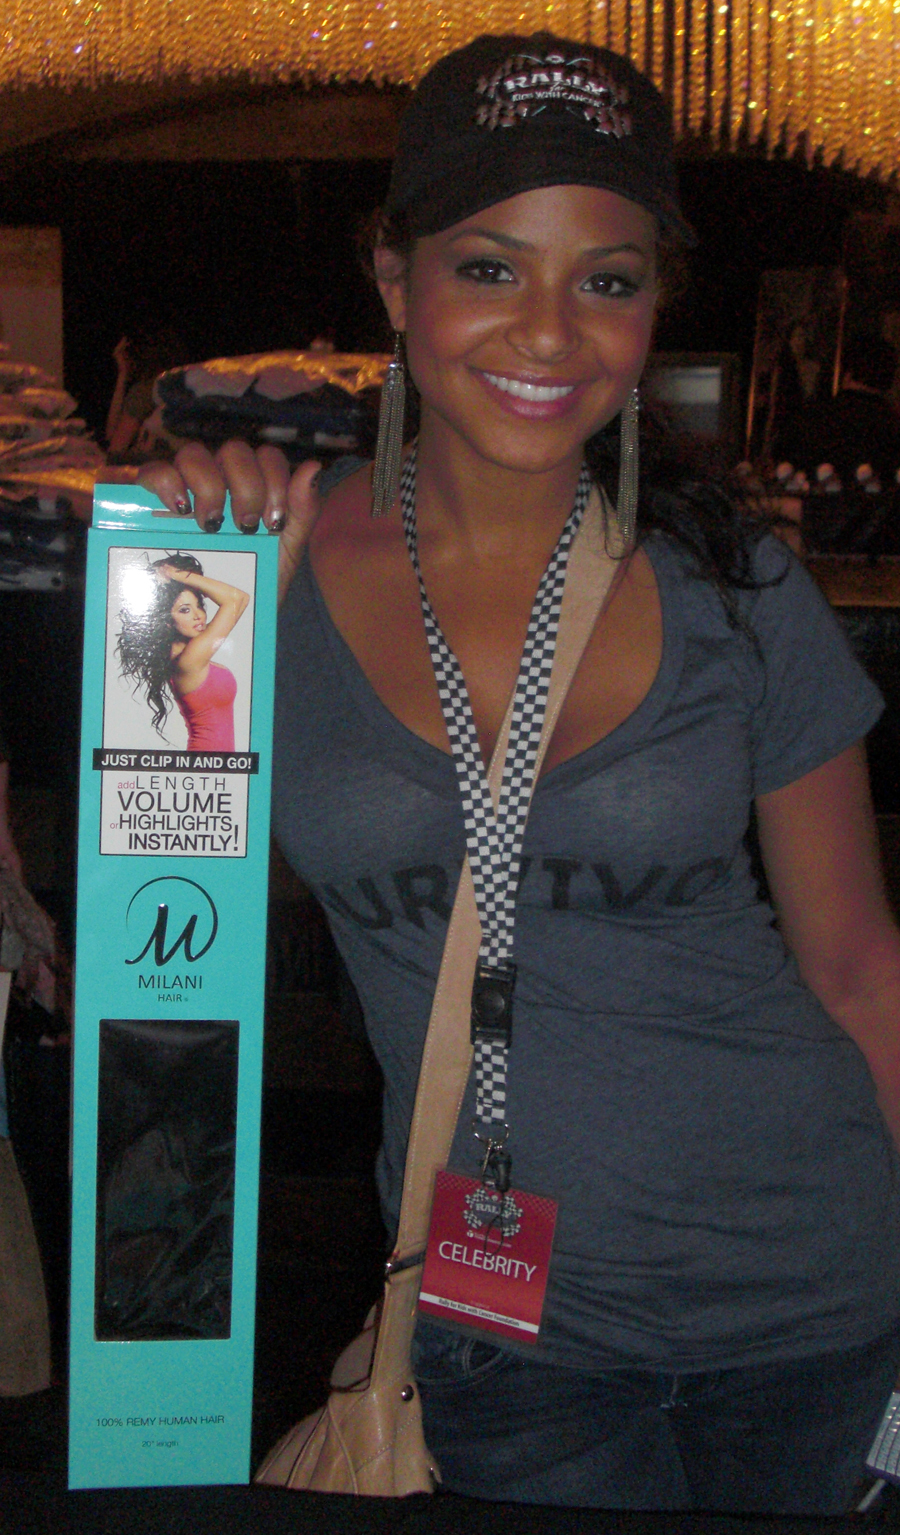 Milani Hair Proudly Sponsors Rally For Kids With Cancer Hosted By